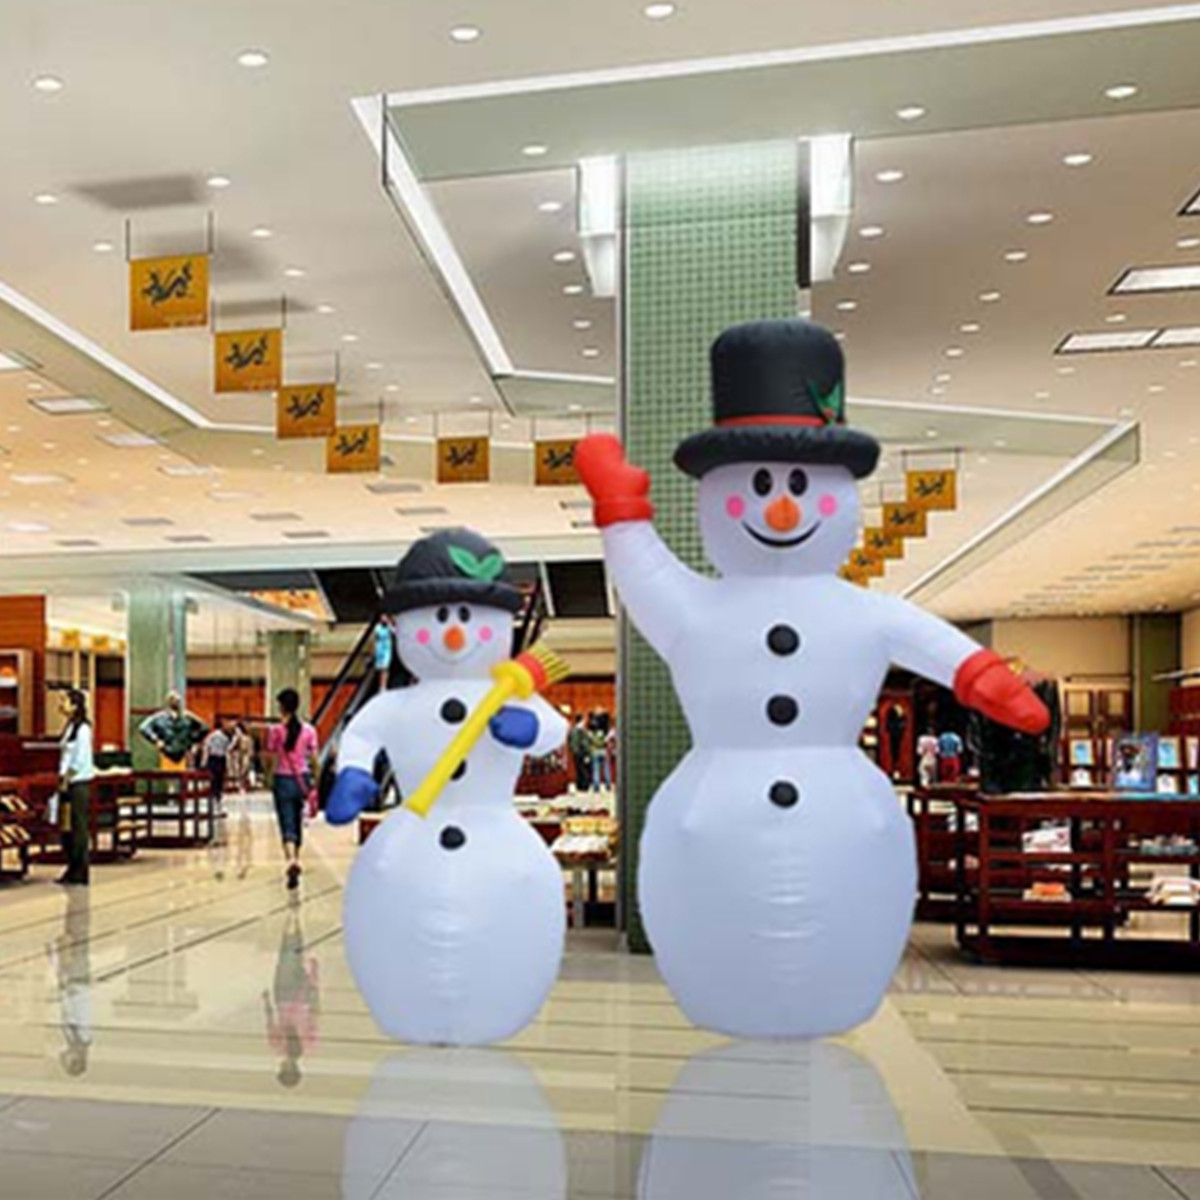 EU plug 180/240CM Giant Inflatable Snowman Christmas Party Props Air Blower Hotels New Year Holiday Lighting LED Light Decor